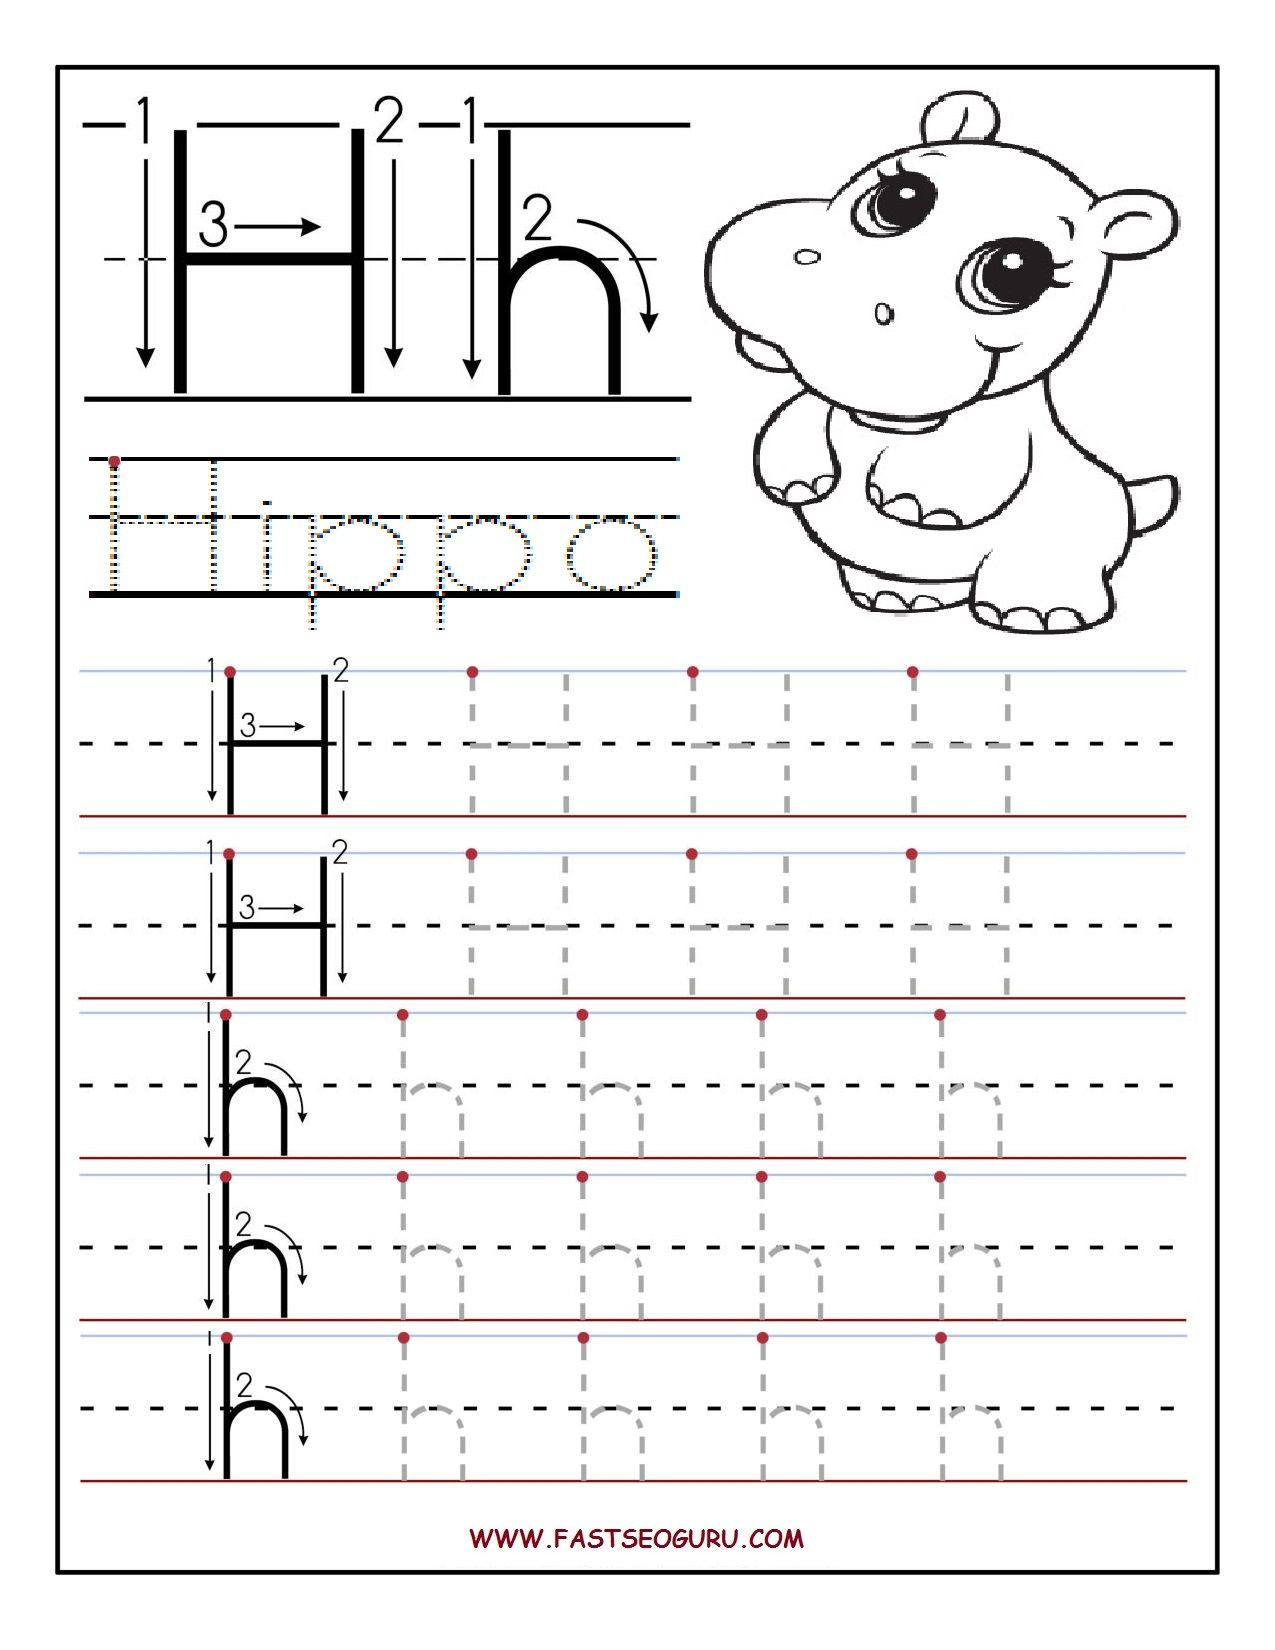 Printable Letter H Tracing Worksheets For Preschool with regard to Letter H Worksheets For Kindergarten